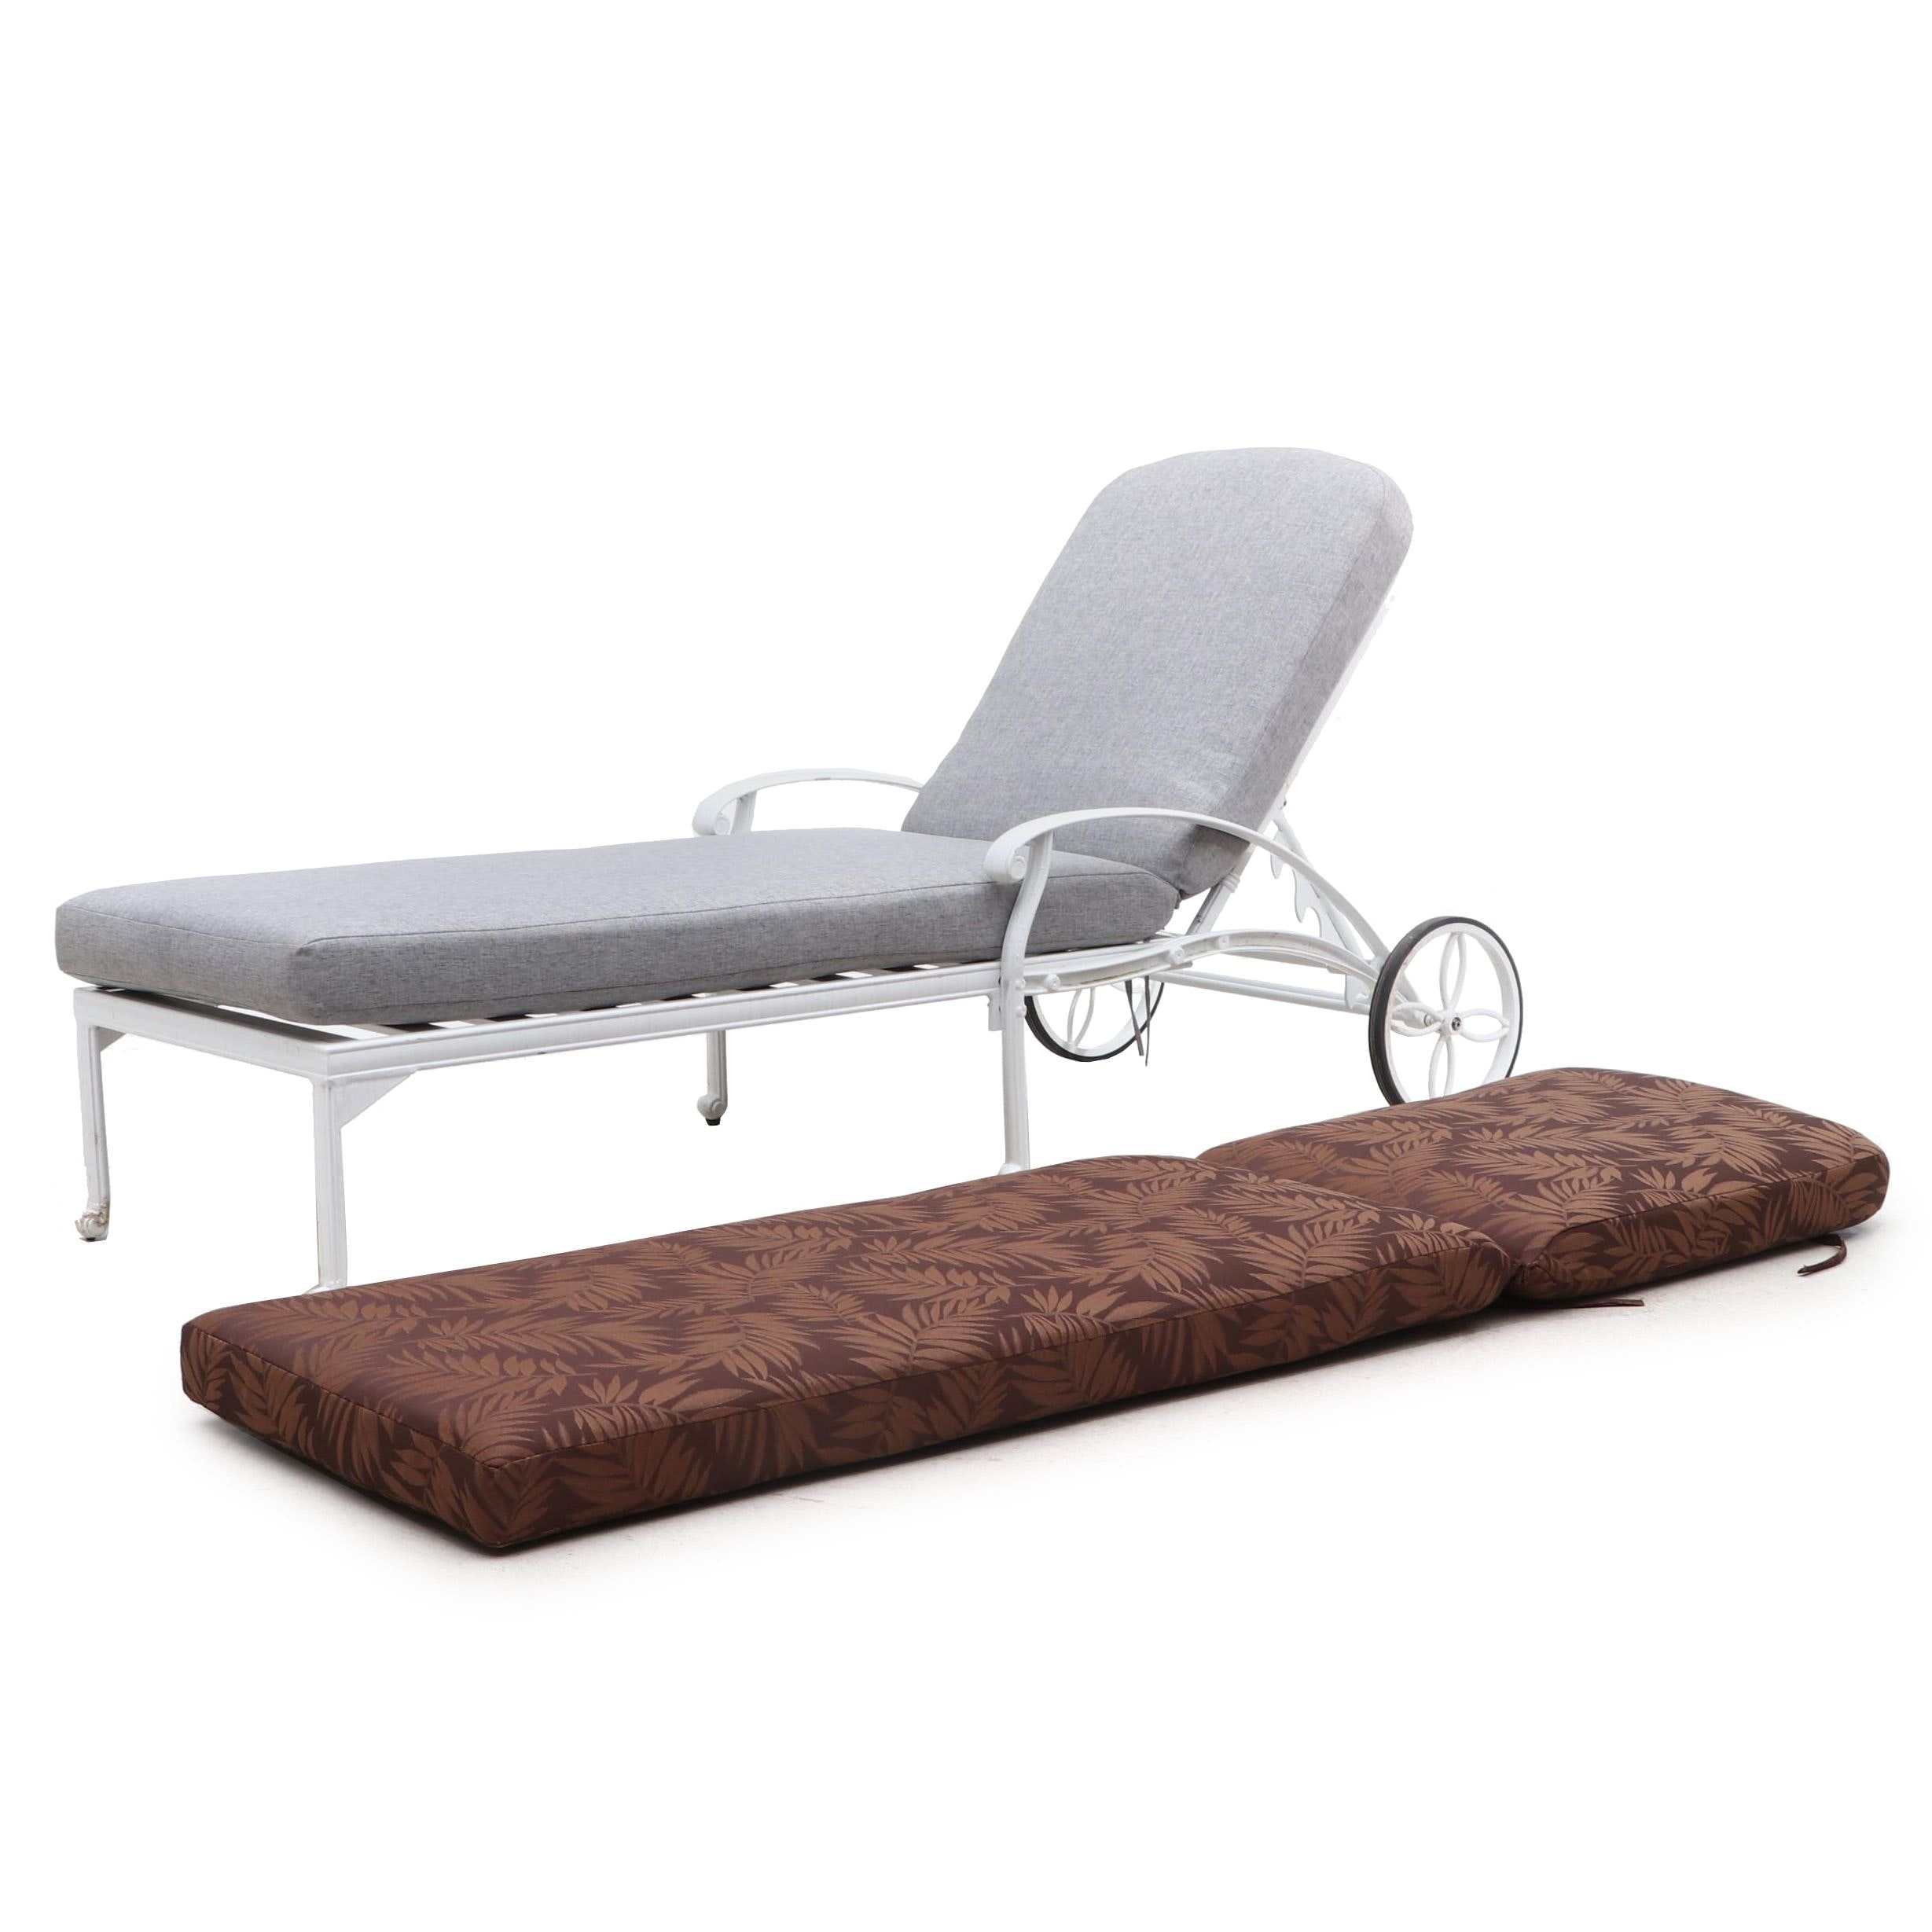 Cast Metal Adjustable Patio Chaise Lounge Chair with Cusions